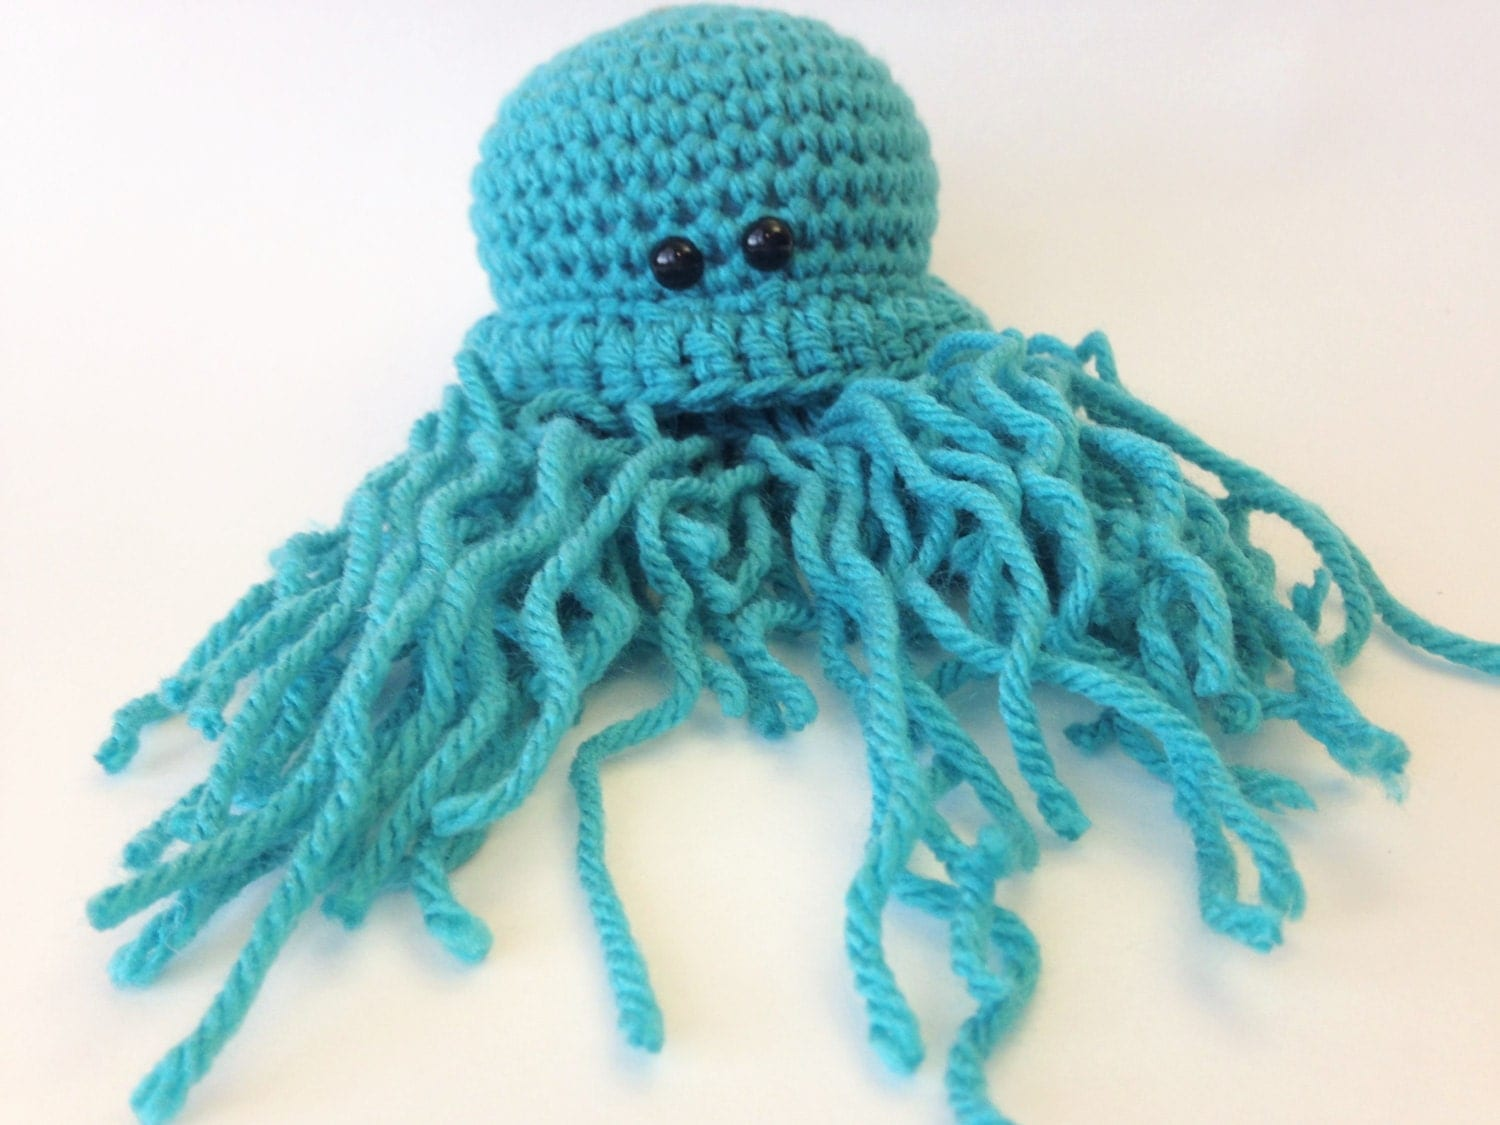 Jellyfish crochet pattern crochet jellyfish pattern zoom bankloansurffo Choice Image